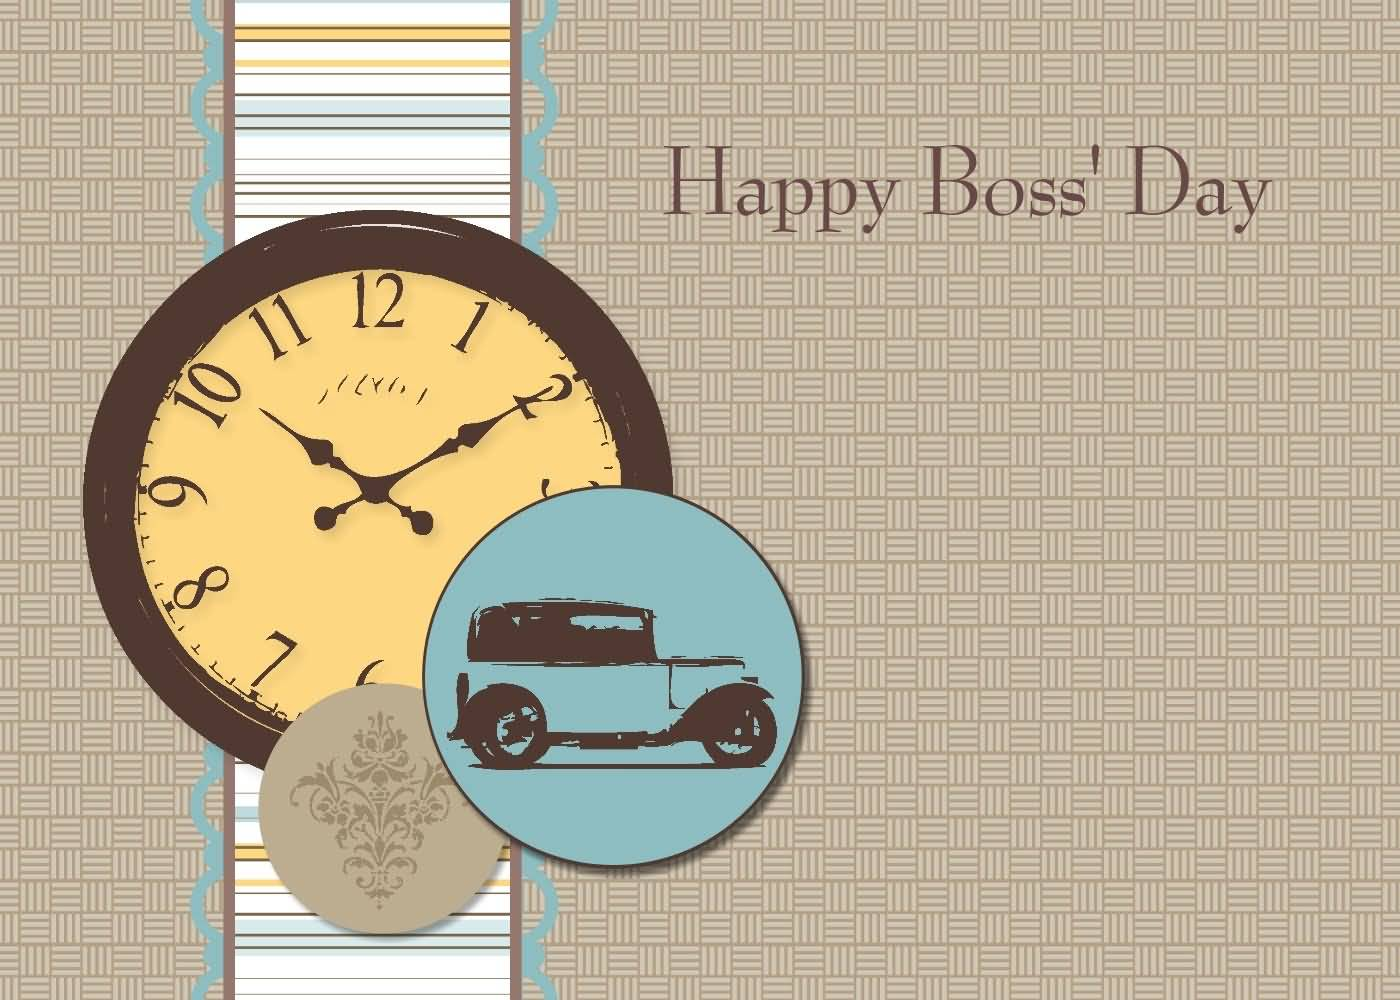 Bosss Day is a holiday which is celebrated either on October 16th or on the working day which is the closest to it if it falls on a weekend This day is not only